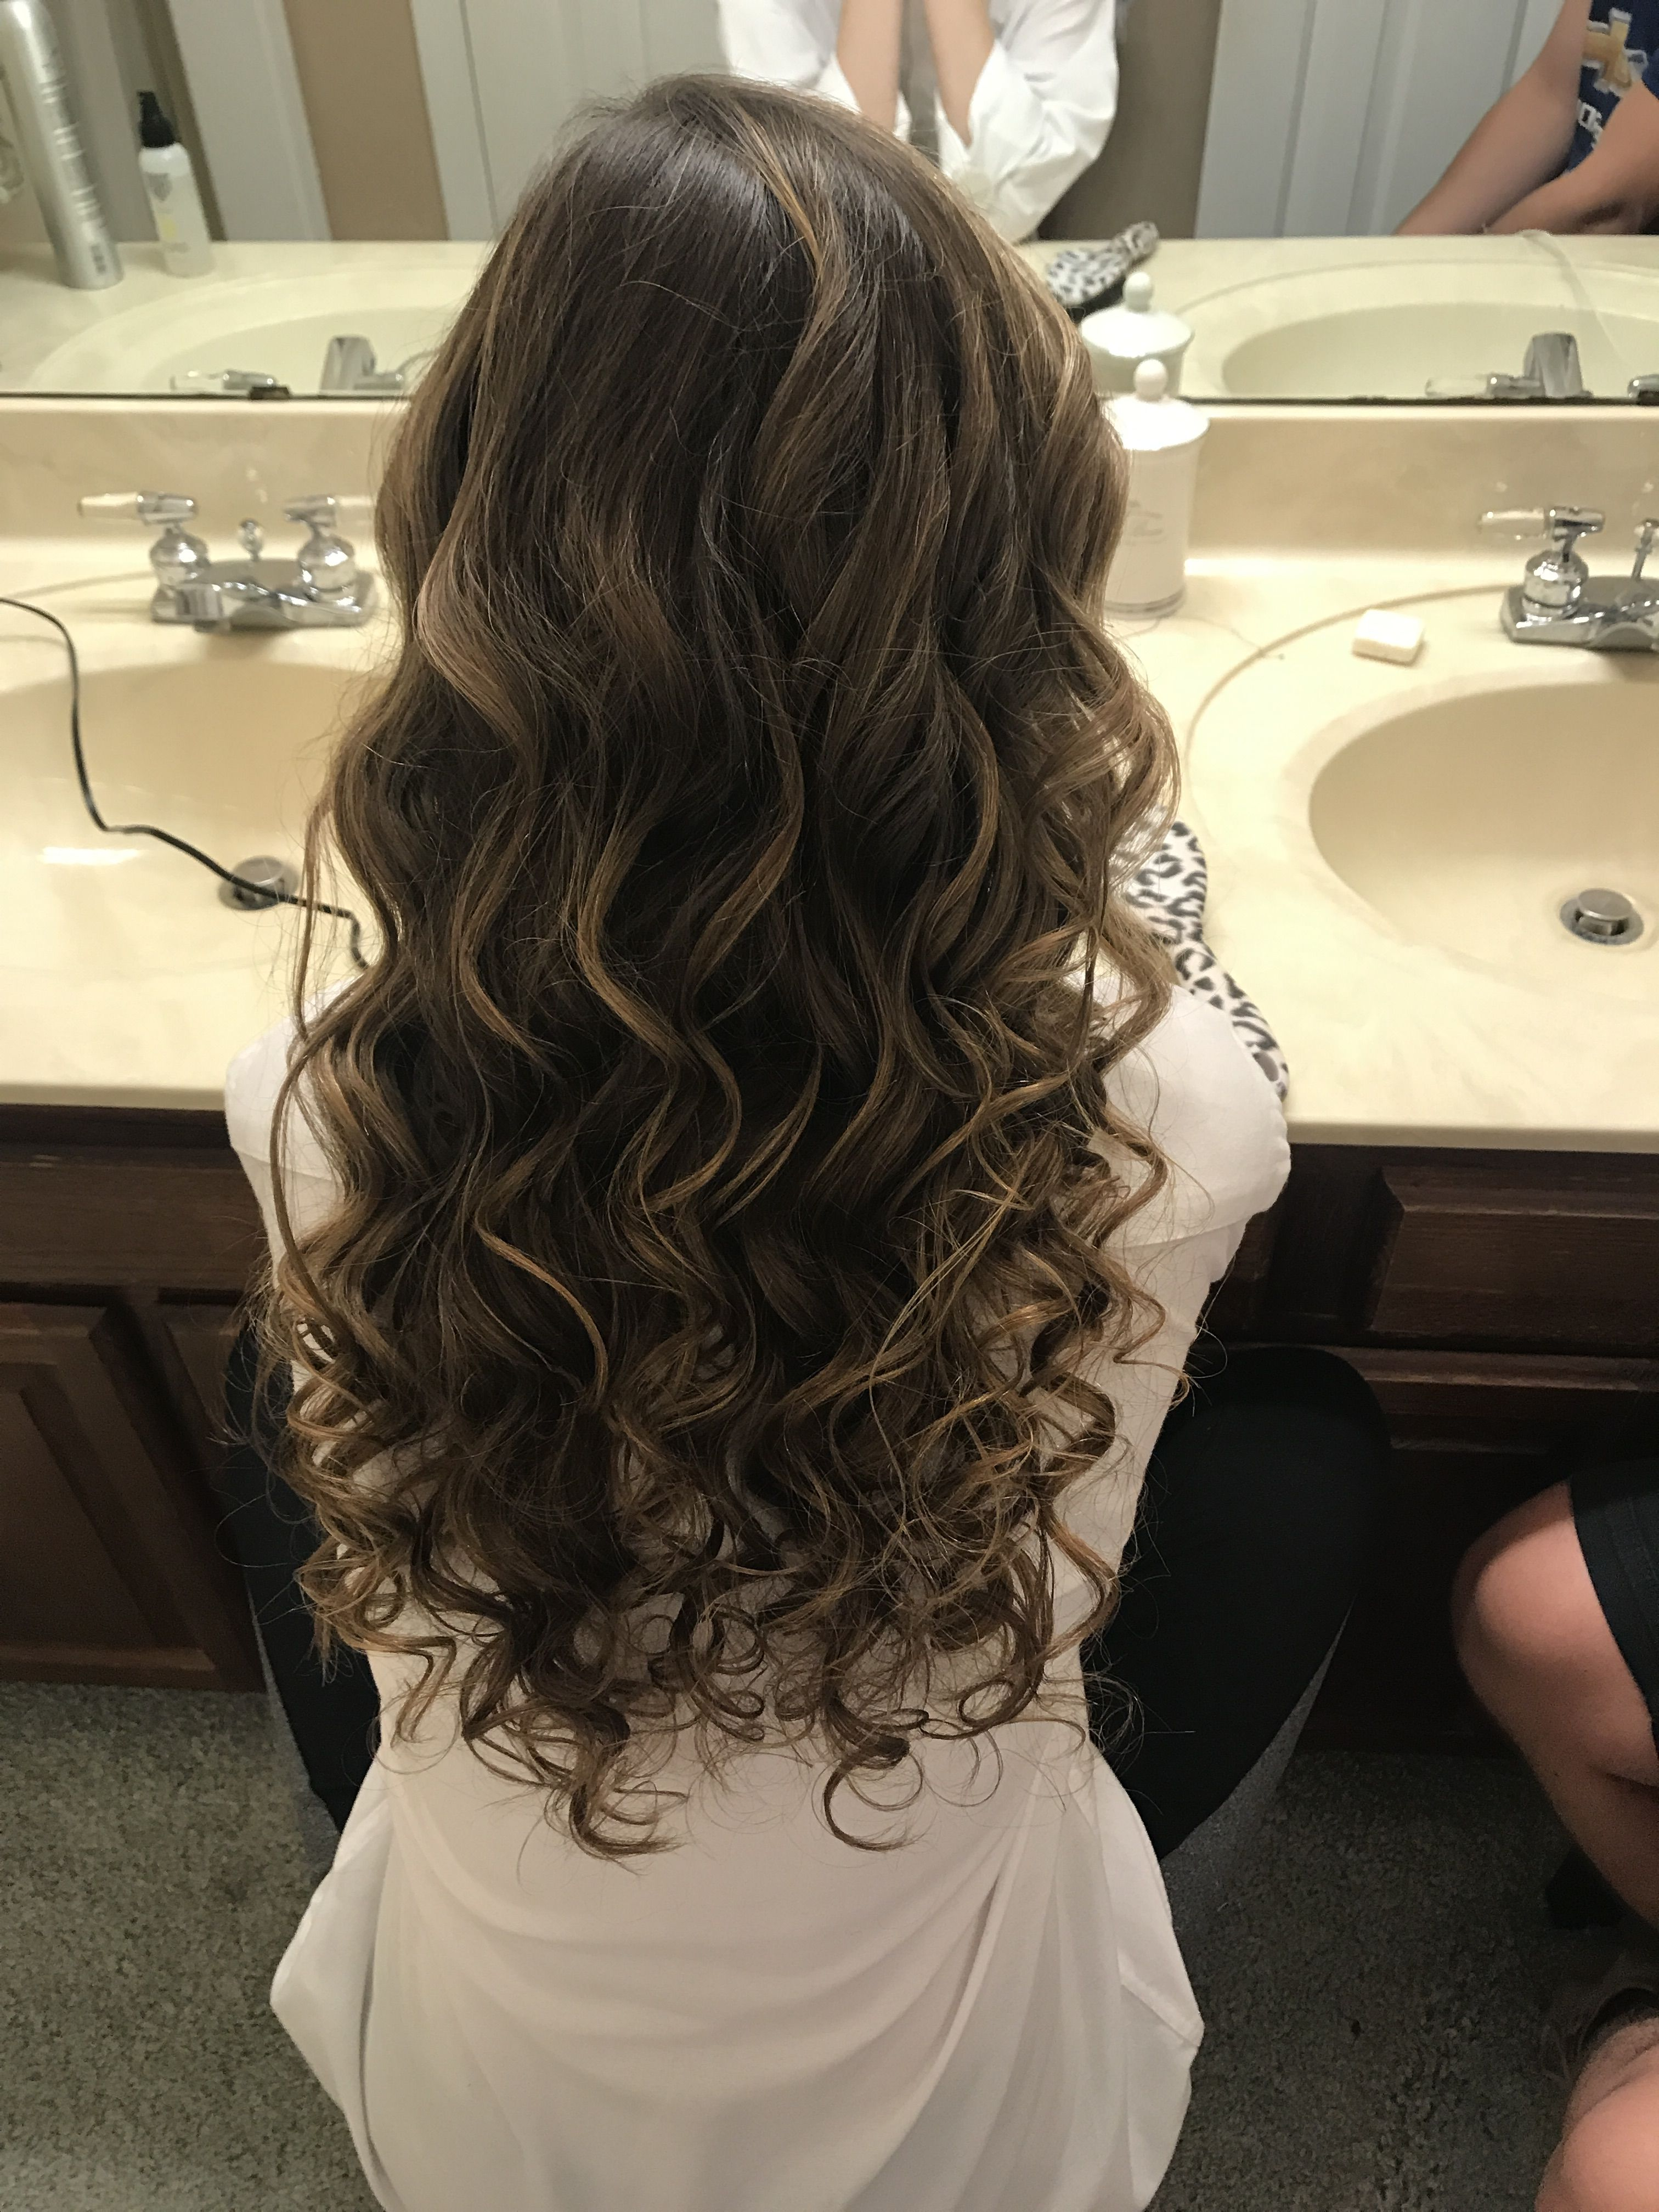 homecoming hair #curls #homecoming #prom #highlights #dance